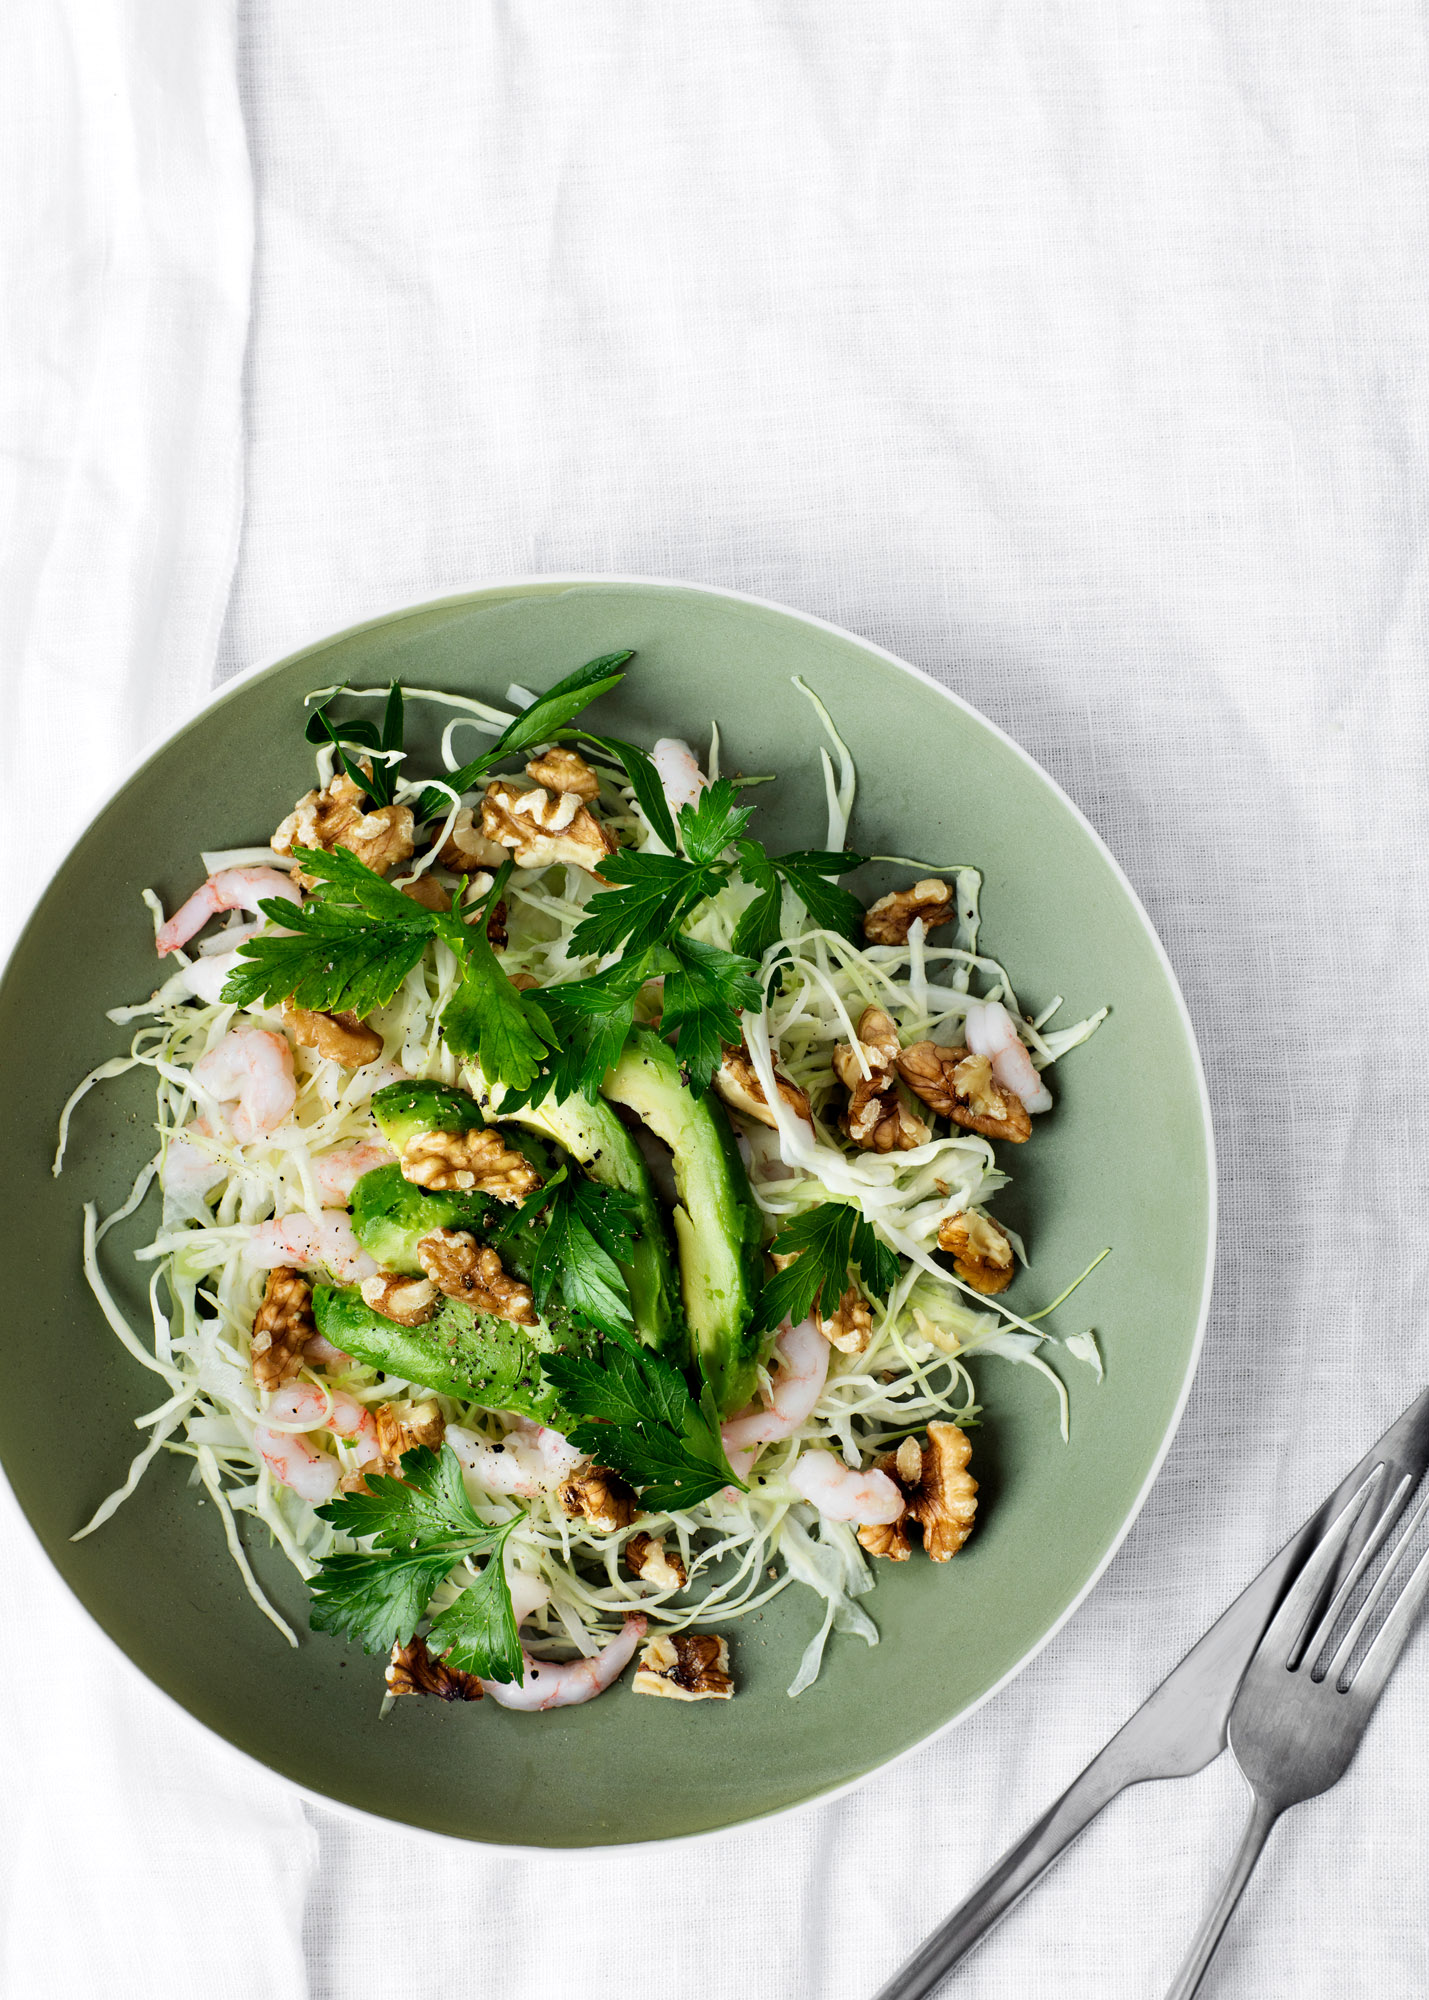 Green Cabbage Salad with Shrimp, Avocado, and Walnuts